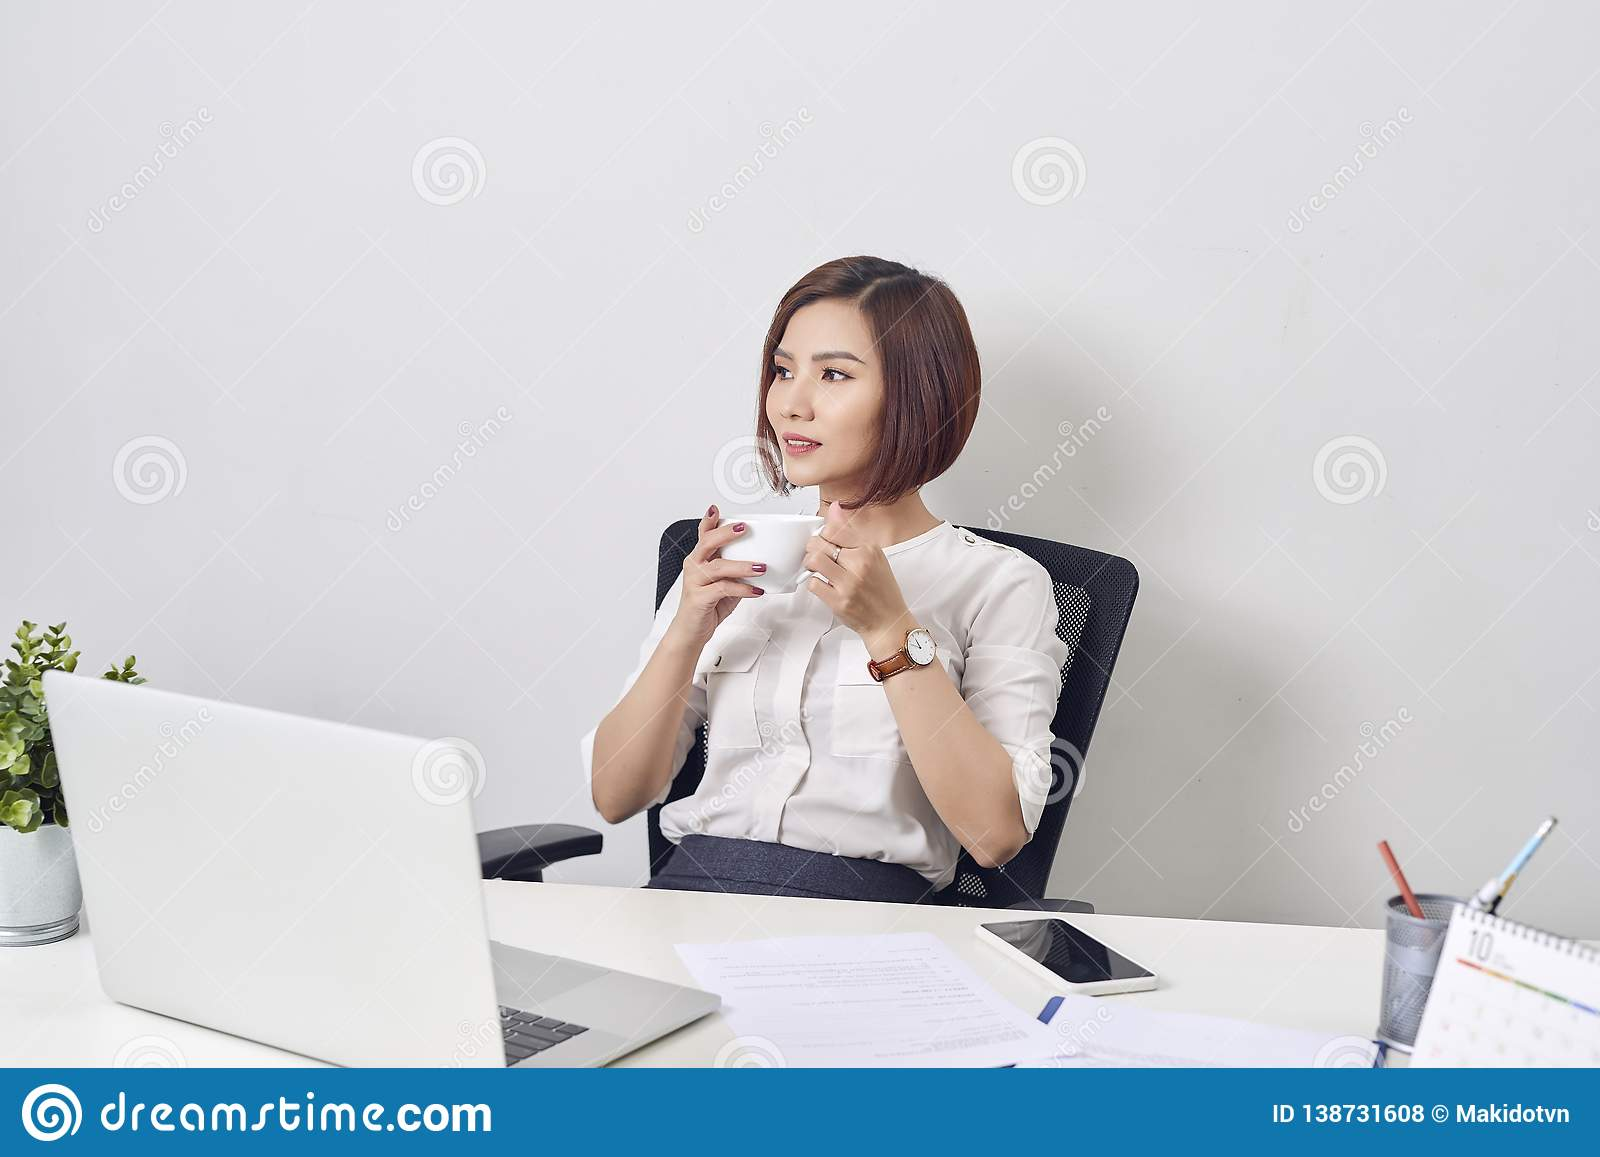 Young happy and attractive asian business woman working at office computer desk smiling drinking cup of coffee relaxed and